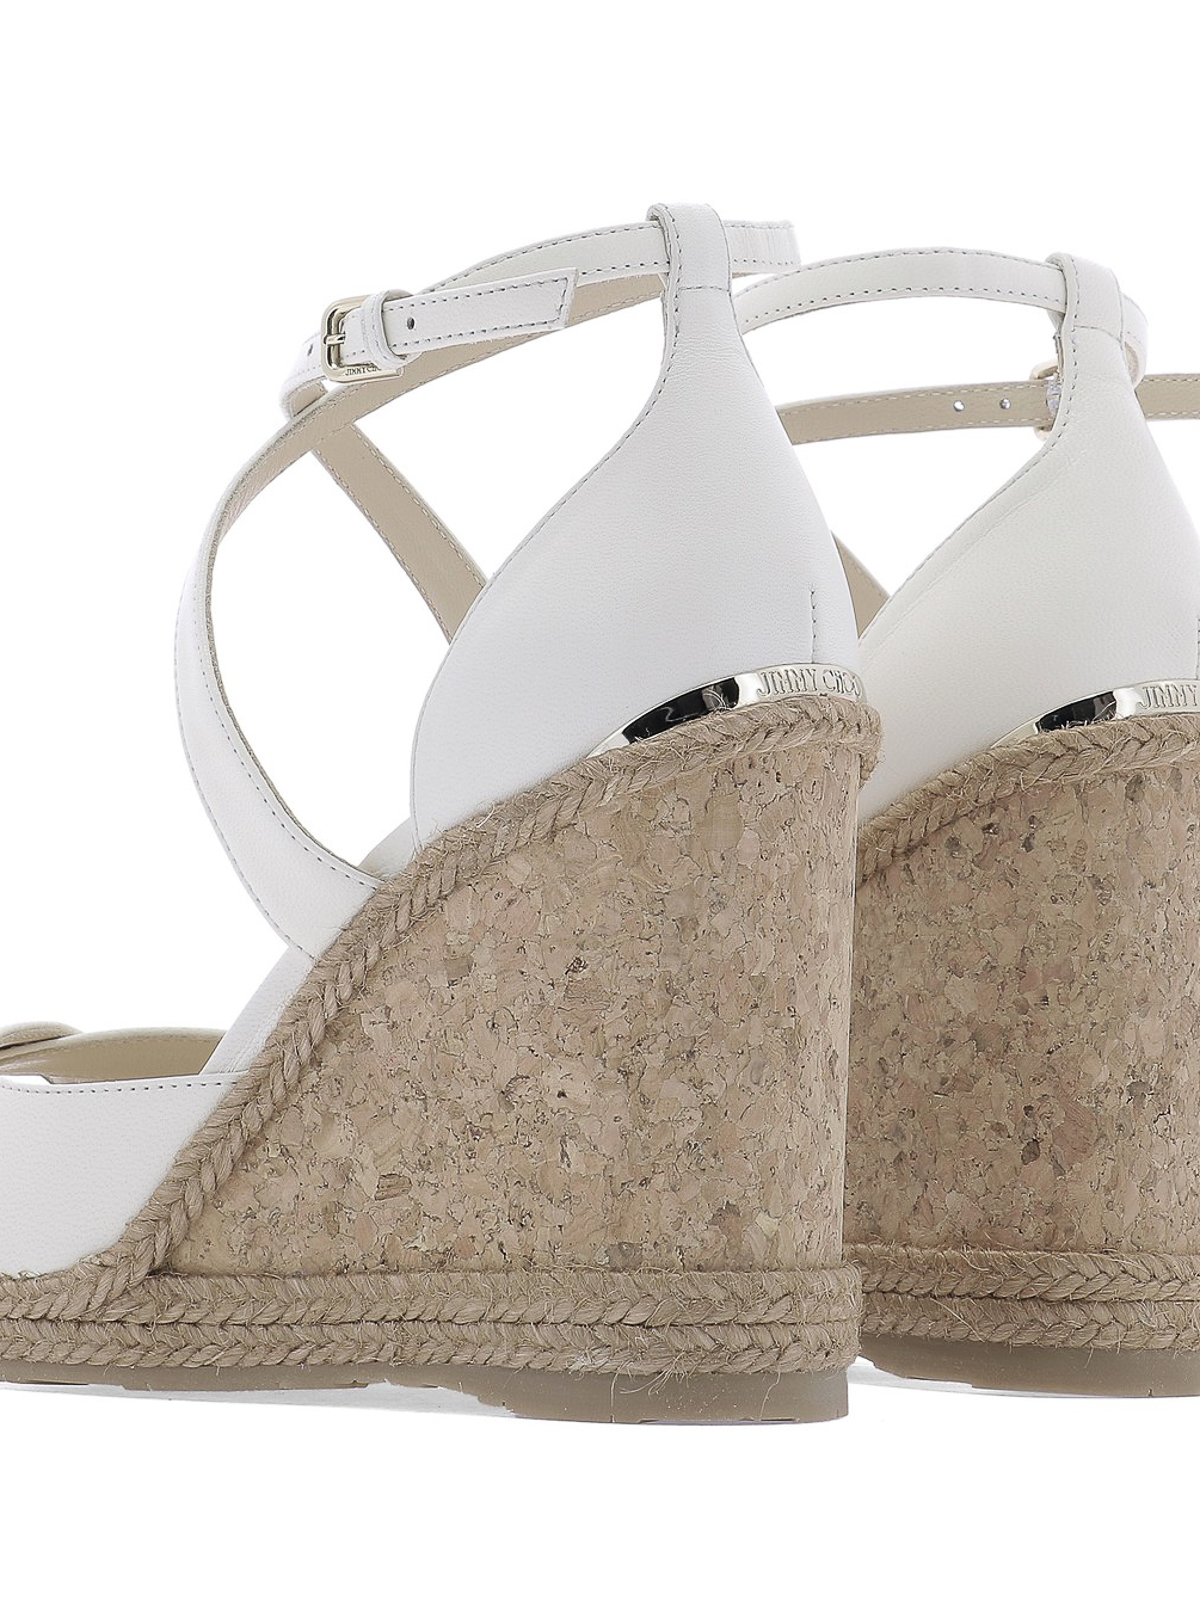 11e70208cb0 Jimmy Choo - Alanah 105 white leather wedge sandals - sandals ...